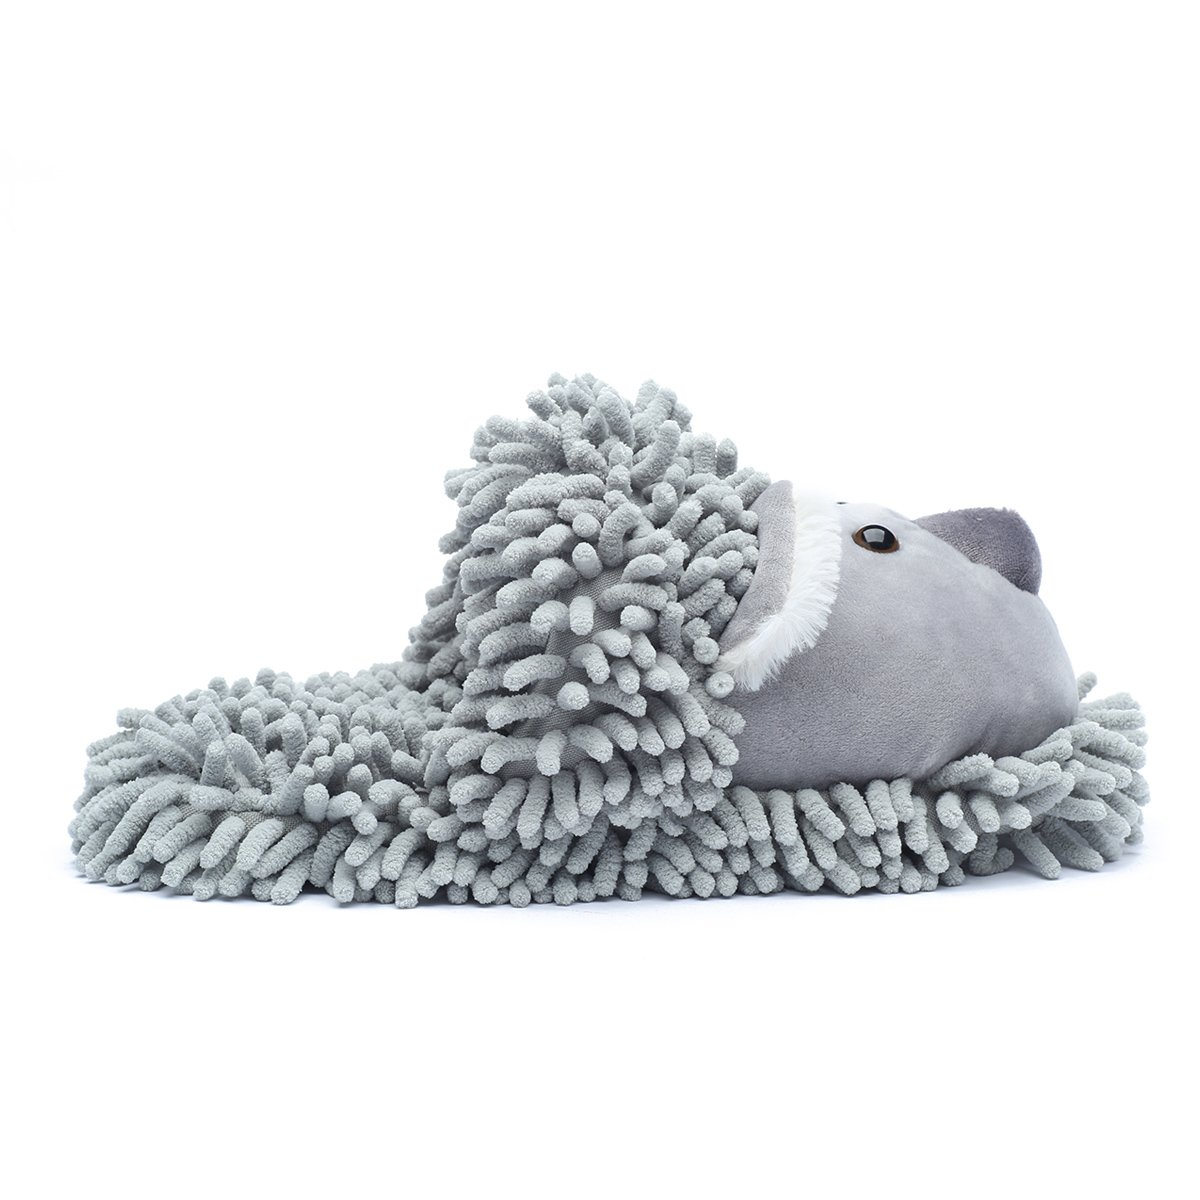 Ofoot Winter Warm Plush Anti-slip Indoor Animal Slippers for Women and Men (M/L 8-10 B(M) US, Grey(Koala)) by Ofoot (Image #5)